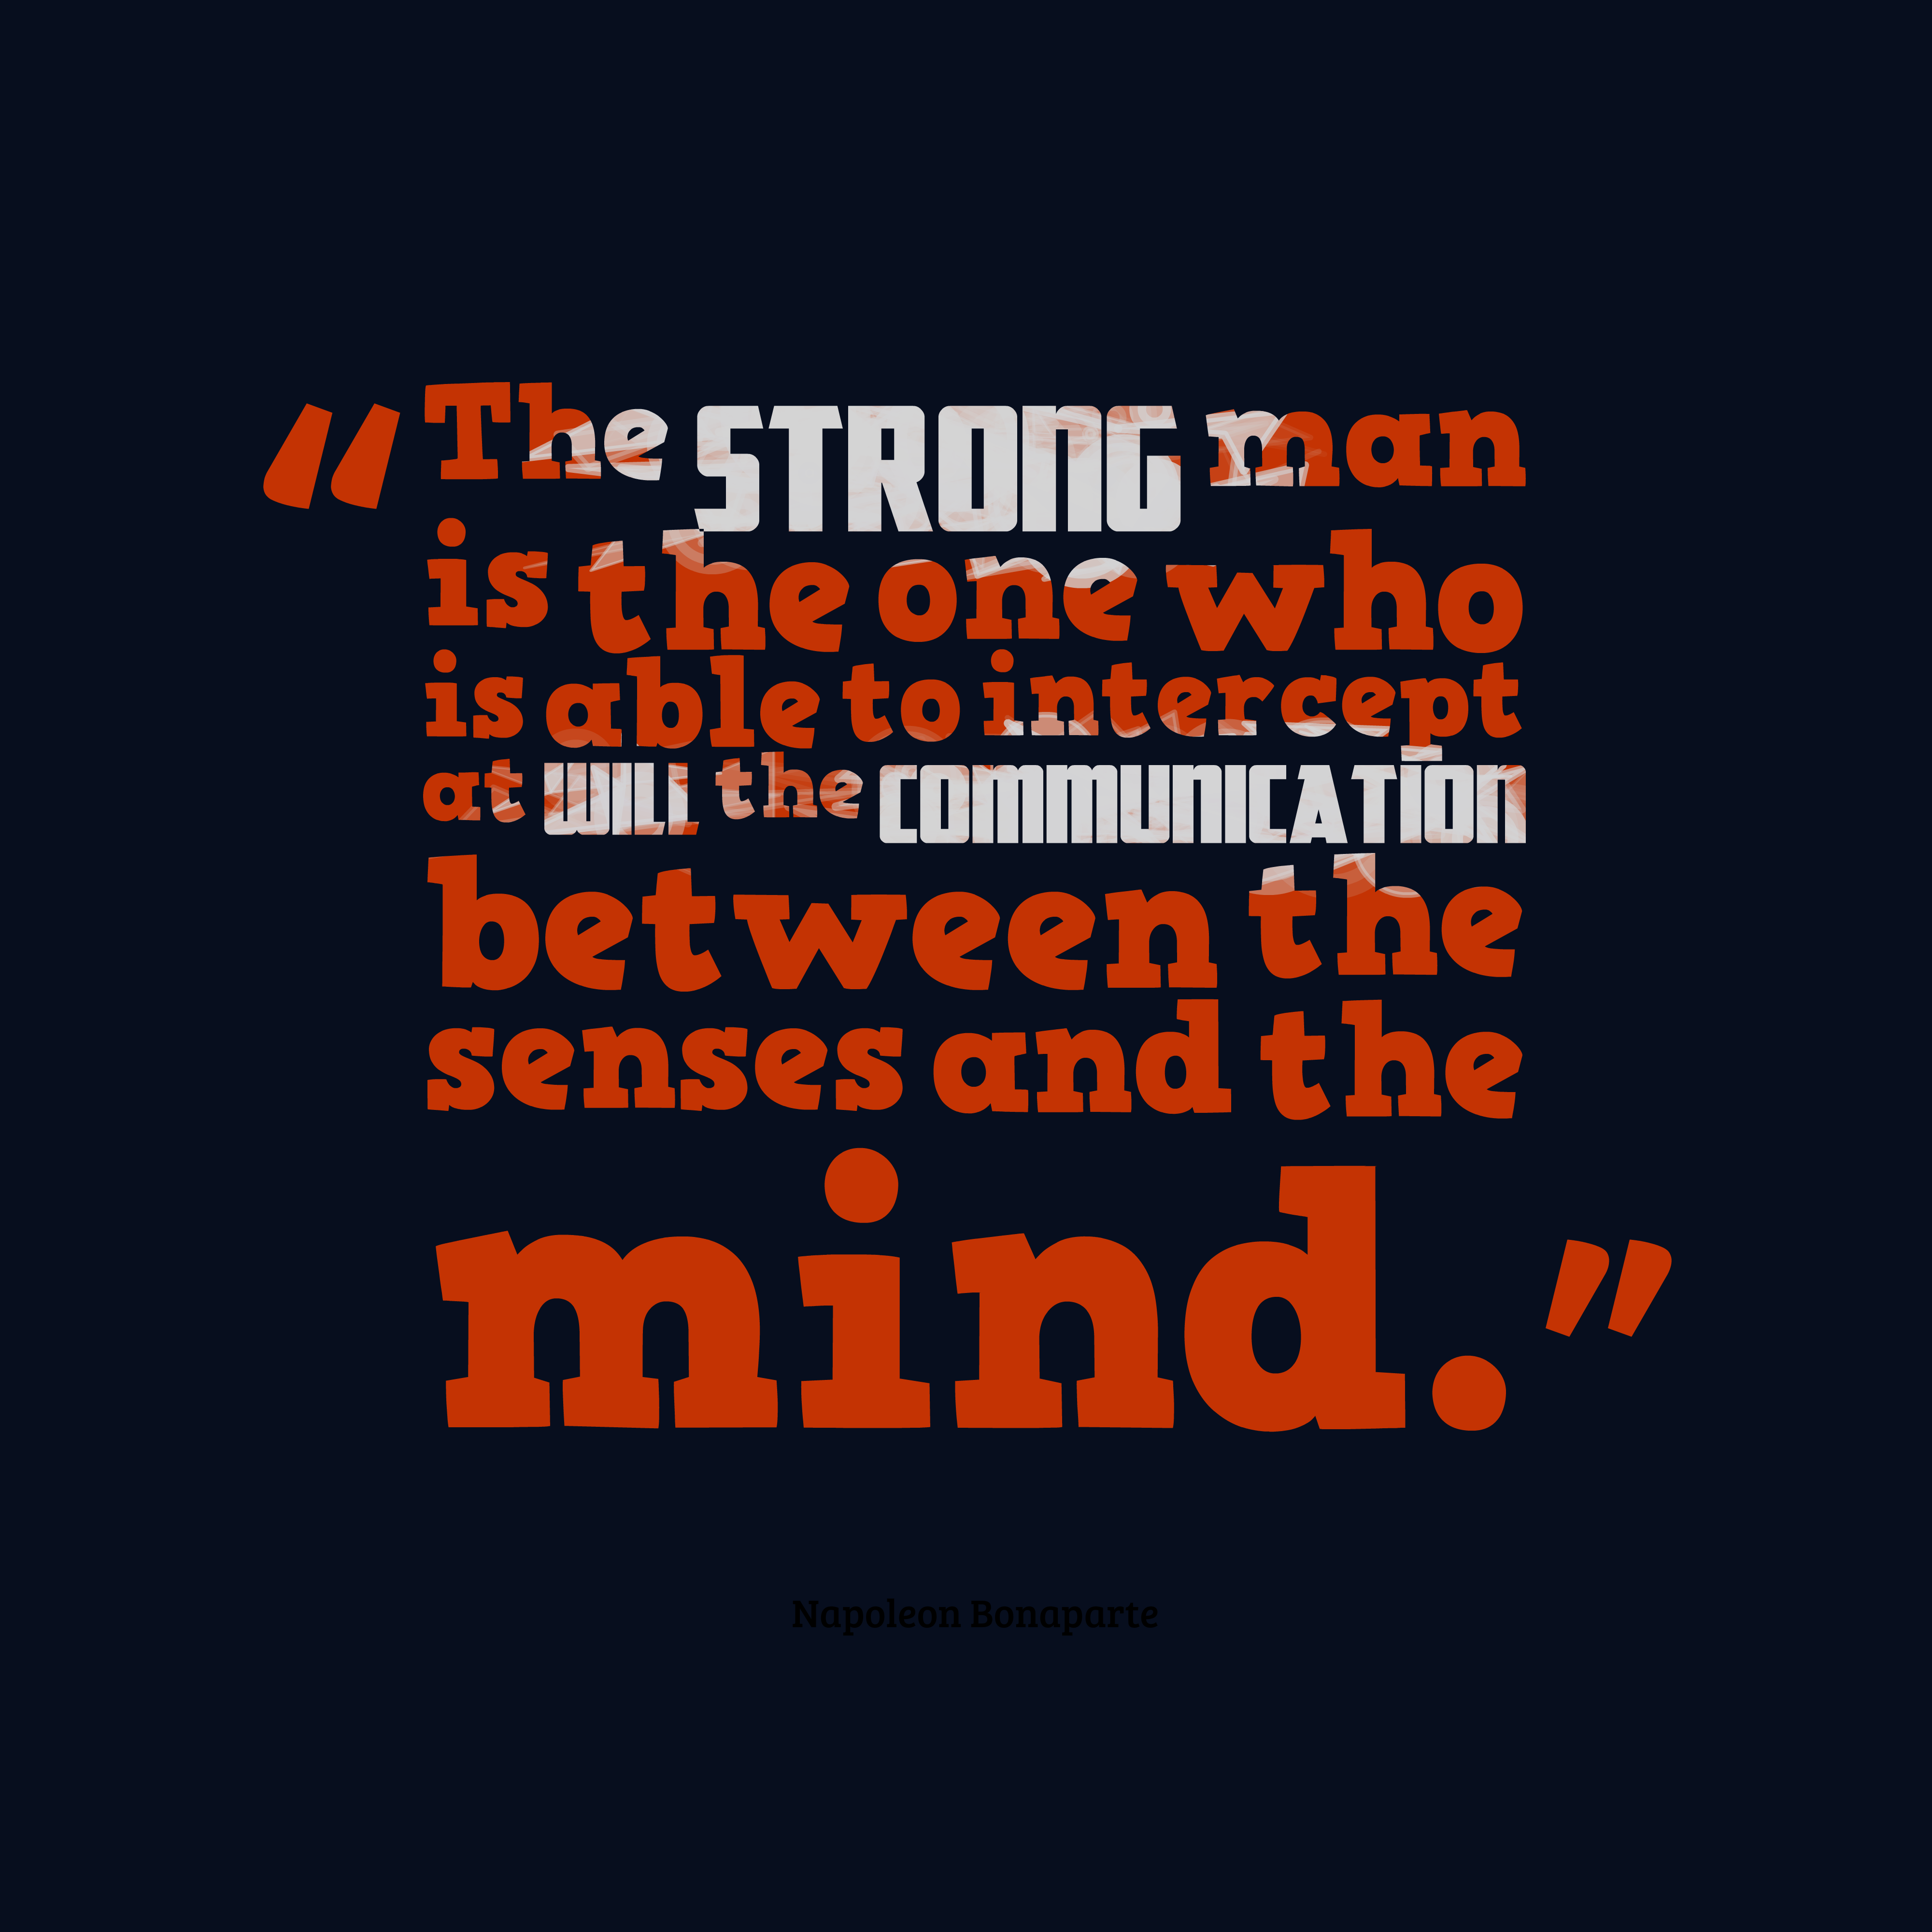 Quotes image of The strong man is the one who is able to intercept at will the communication between the senses and the mind.